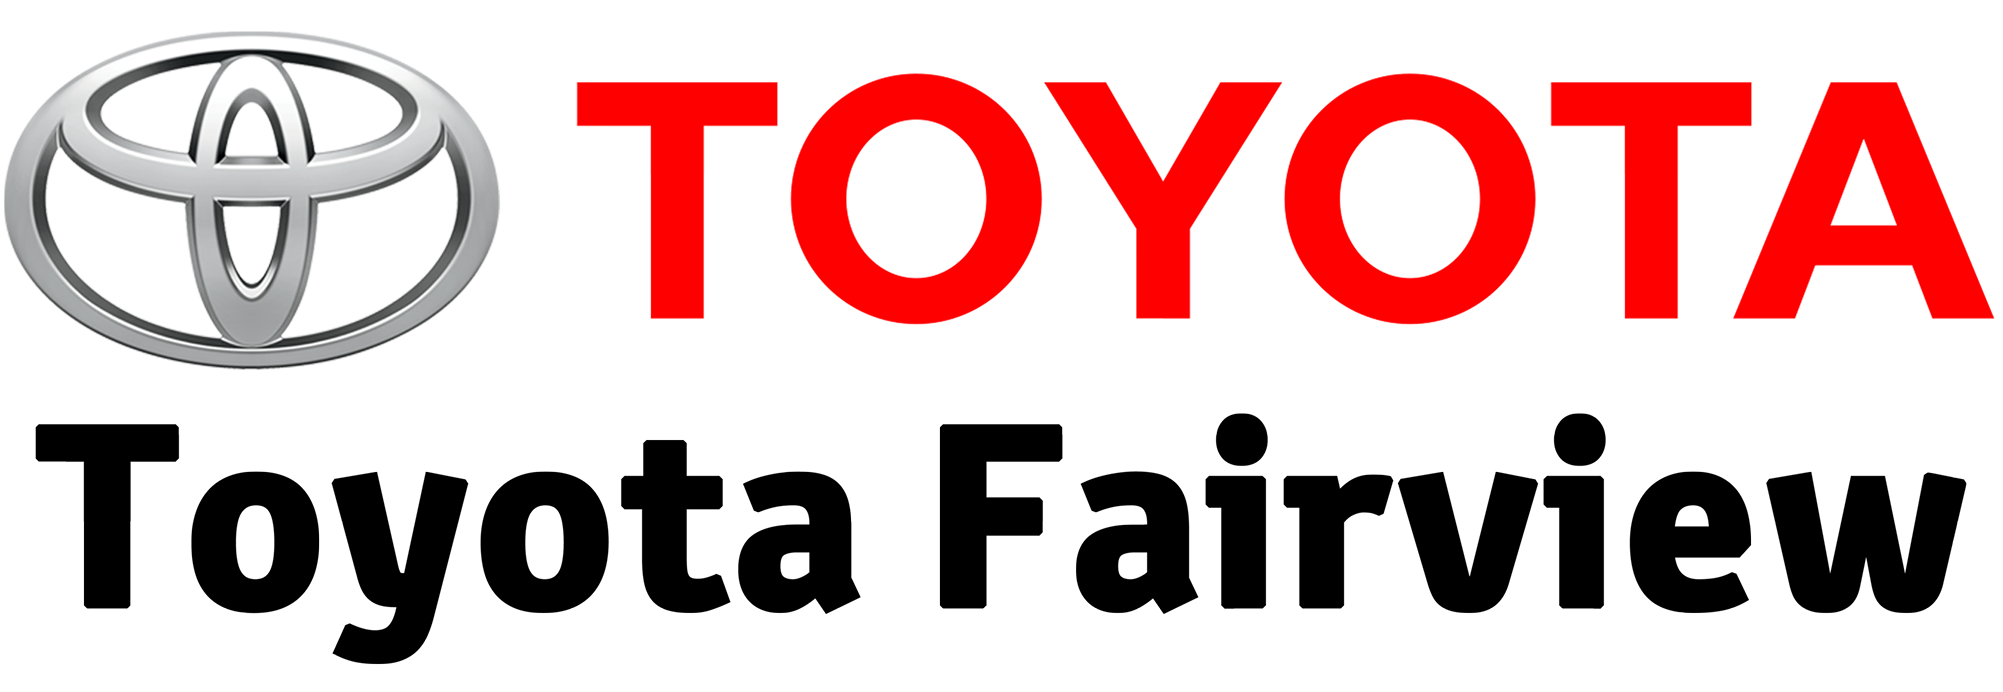 Toyota Fairview